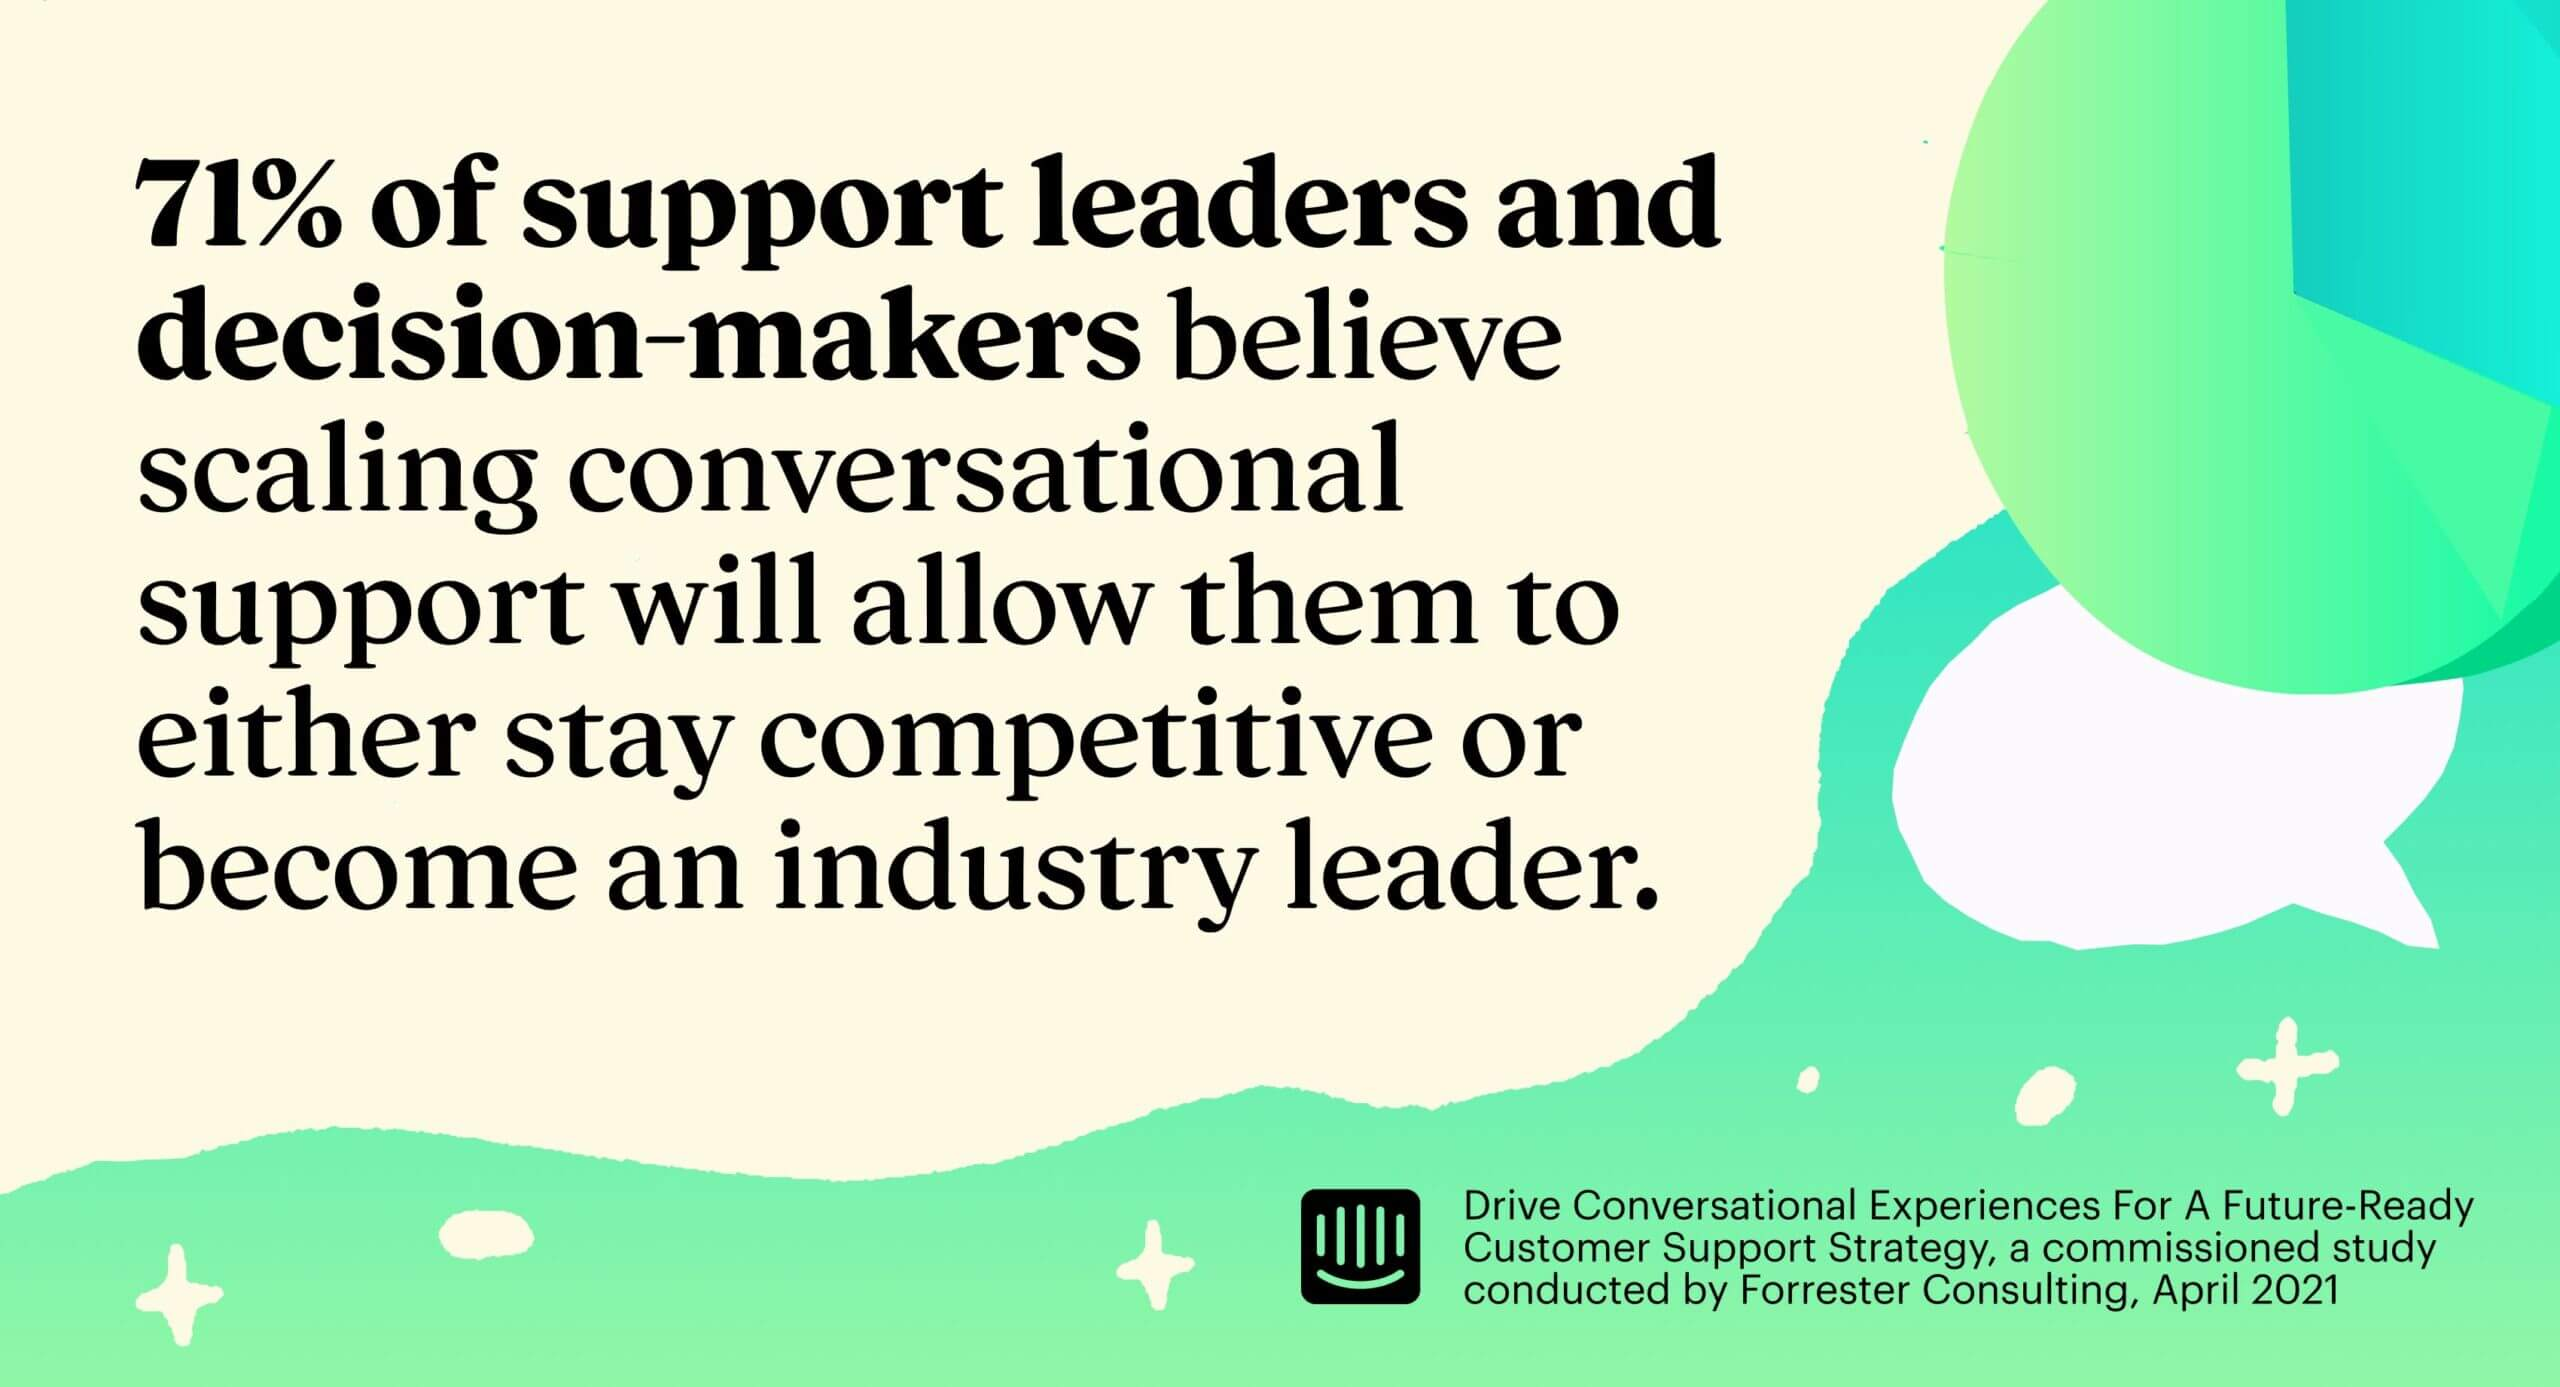 71% of support leaders and decision-makers believe that scaling conversational support will allow them to either stay competitive or become an industry leader.